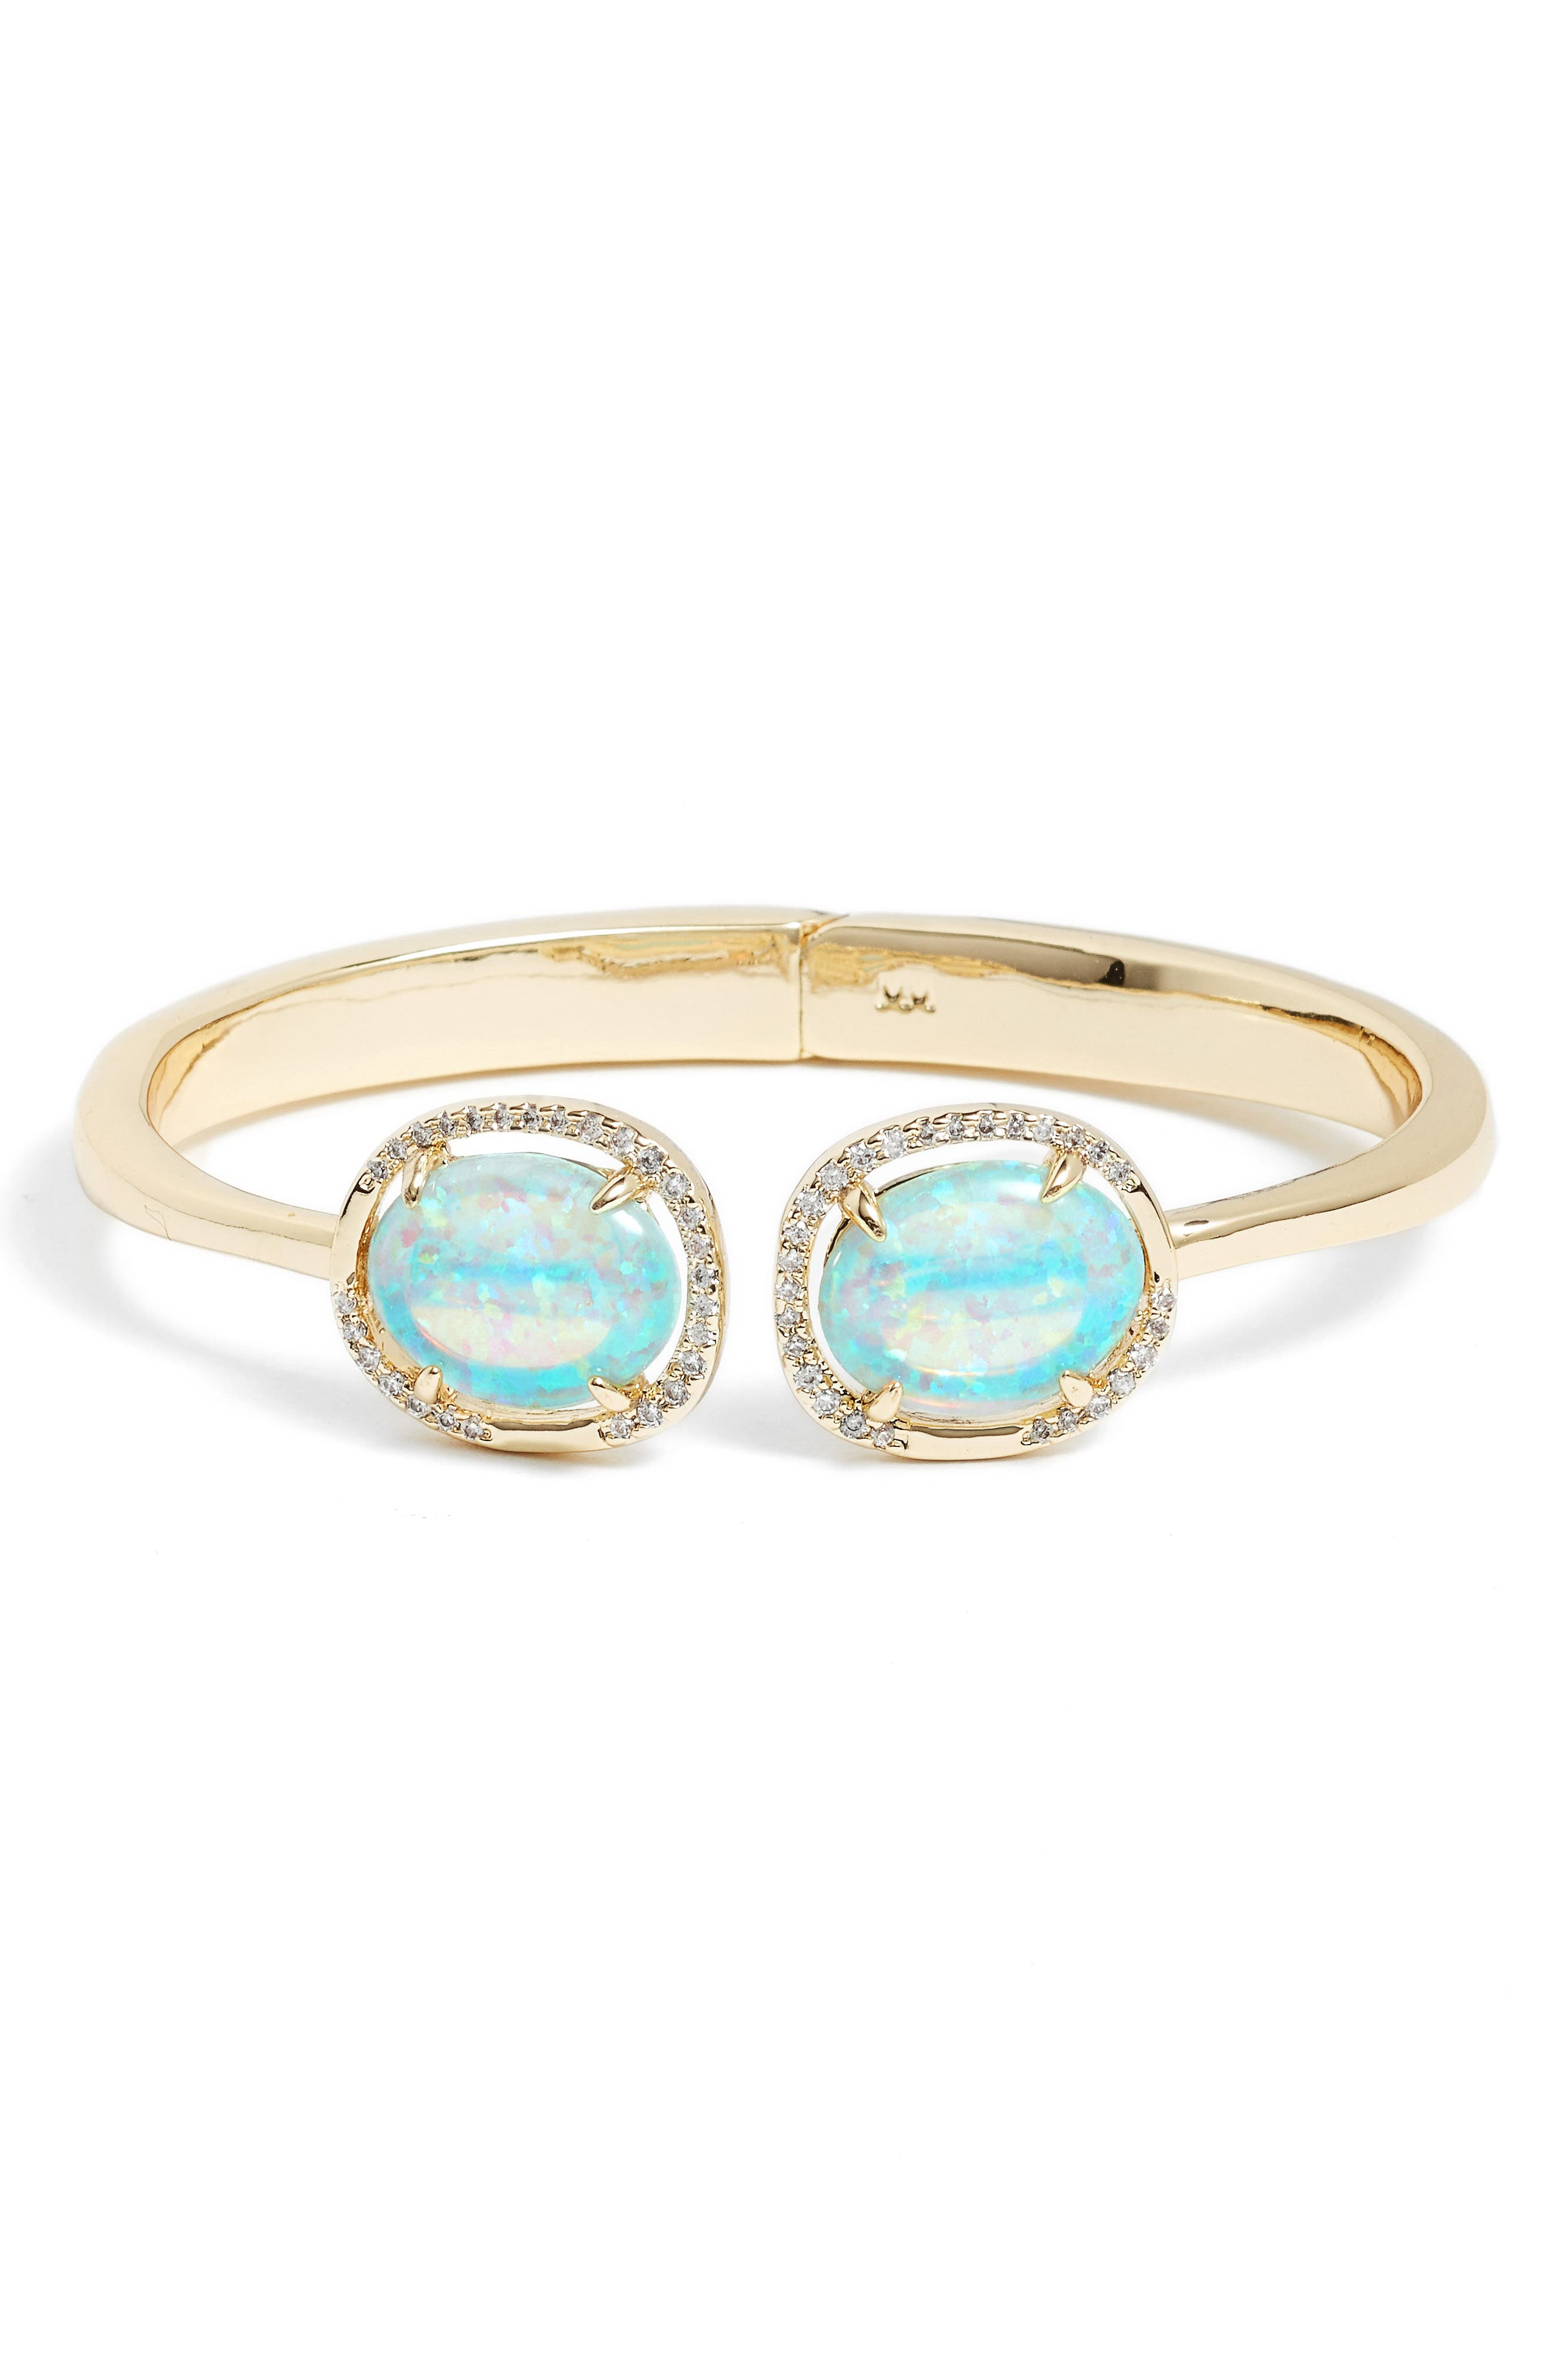 Arabella Opal Cuff Bracelet,                         Main,                         color, Gold Opal/ White Crystal